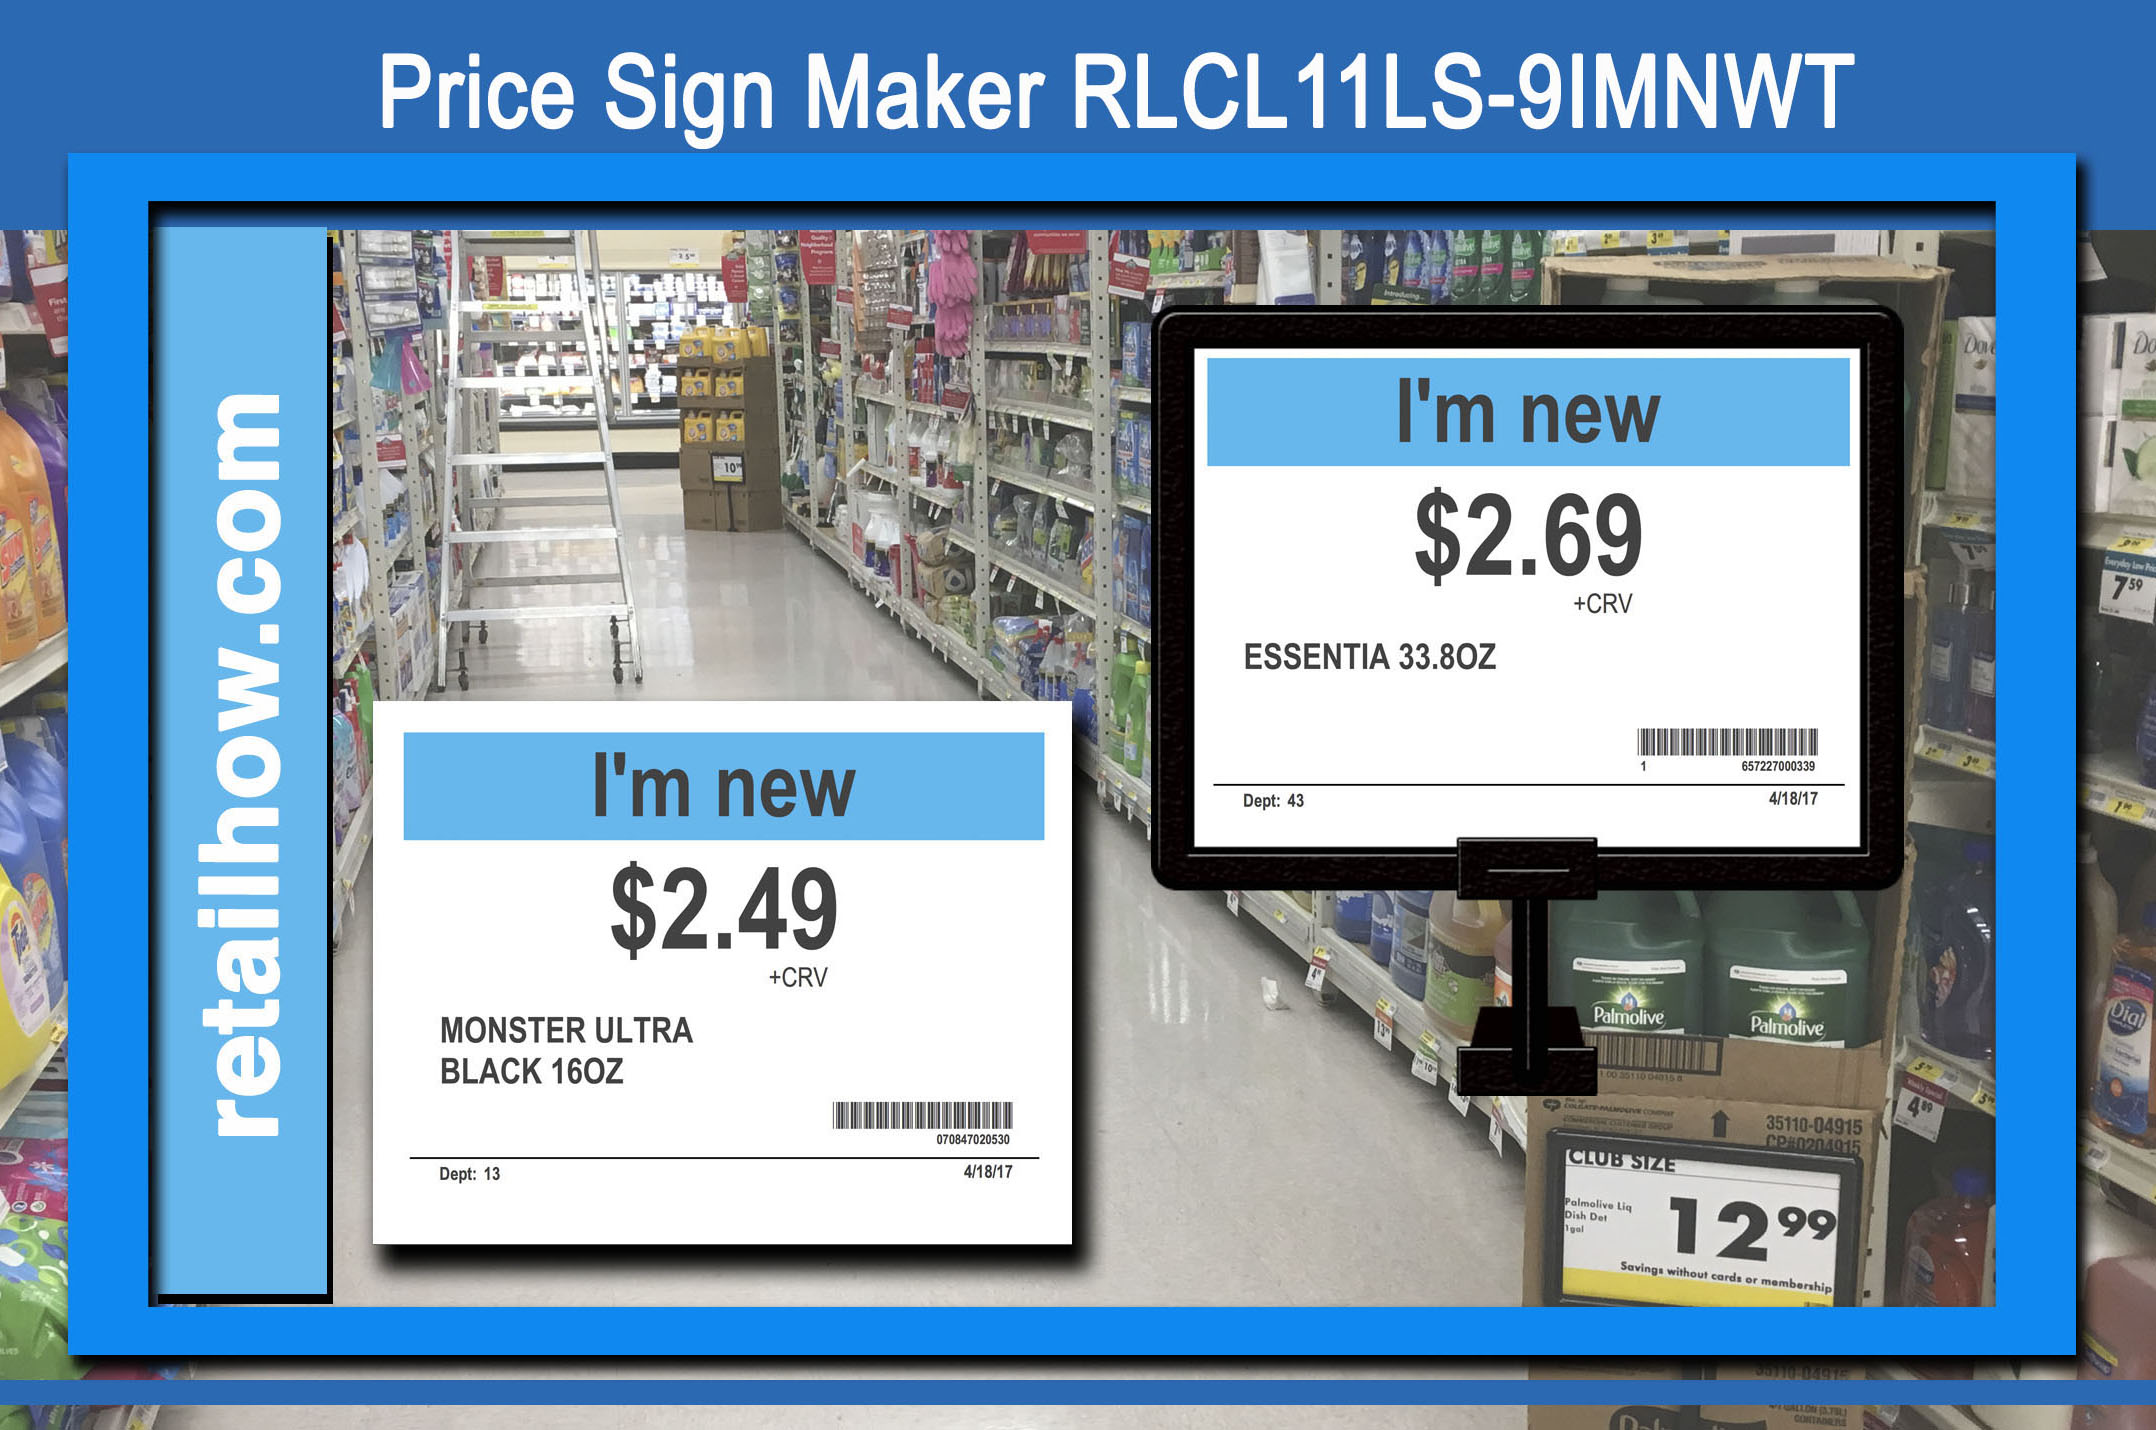 get free price sign maker rlcl11ls 9imnwt retailhow